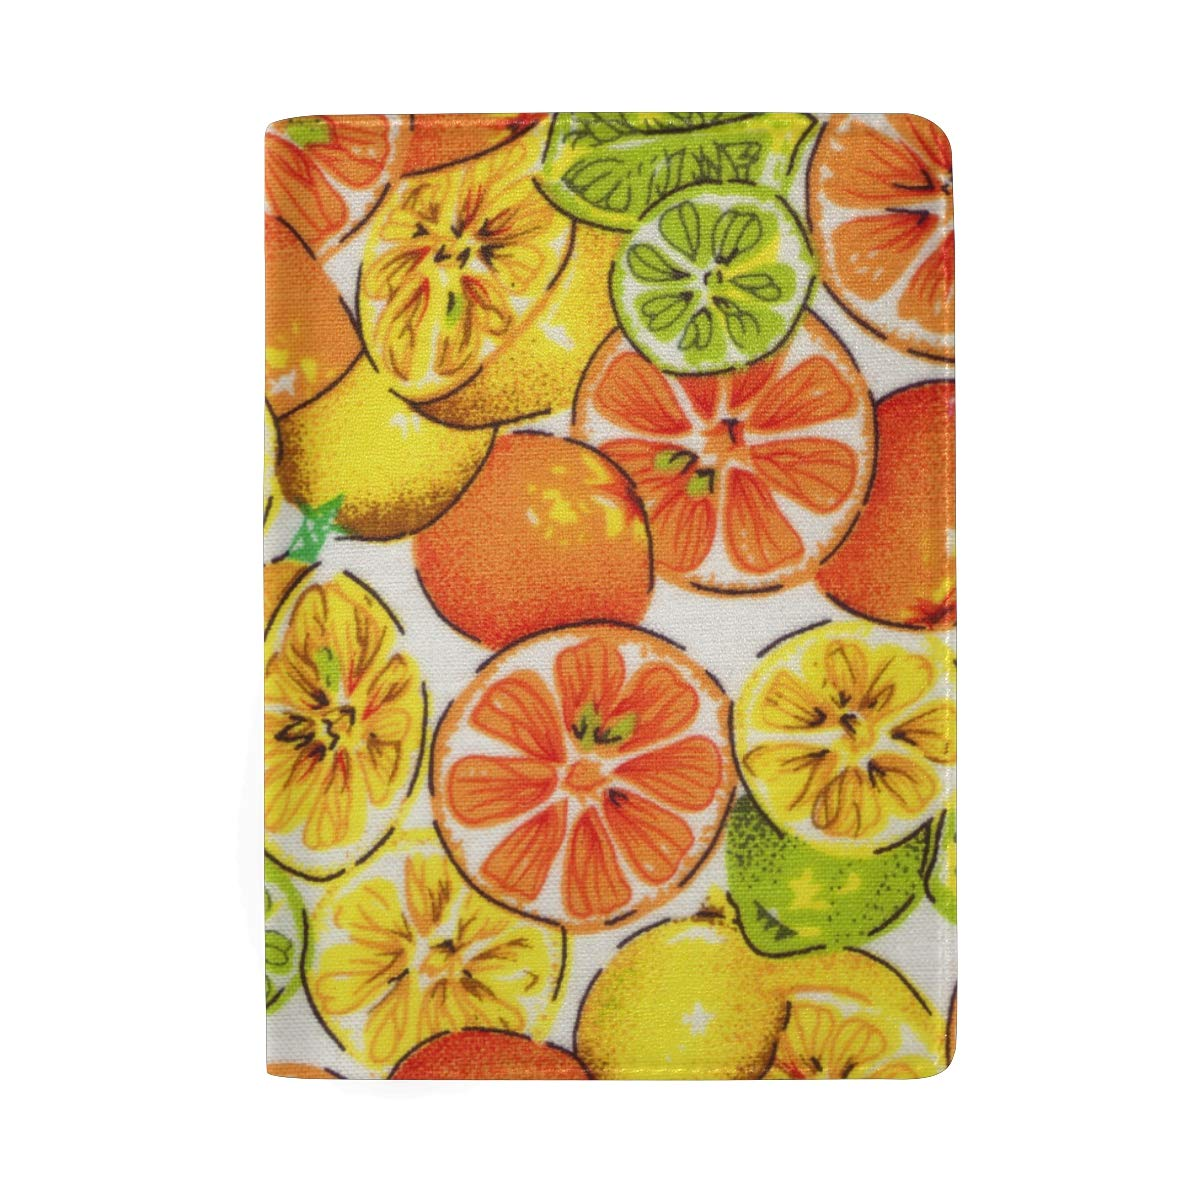 Fruits Pattern Red Yellow Green Leather Passport Holder Cover Case Protector for Men Women Travel with Slots